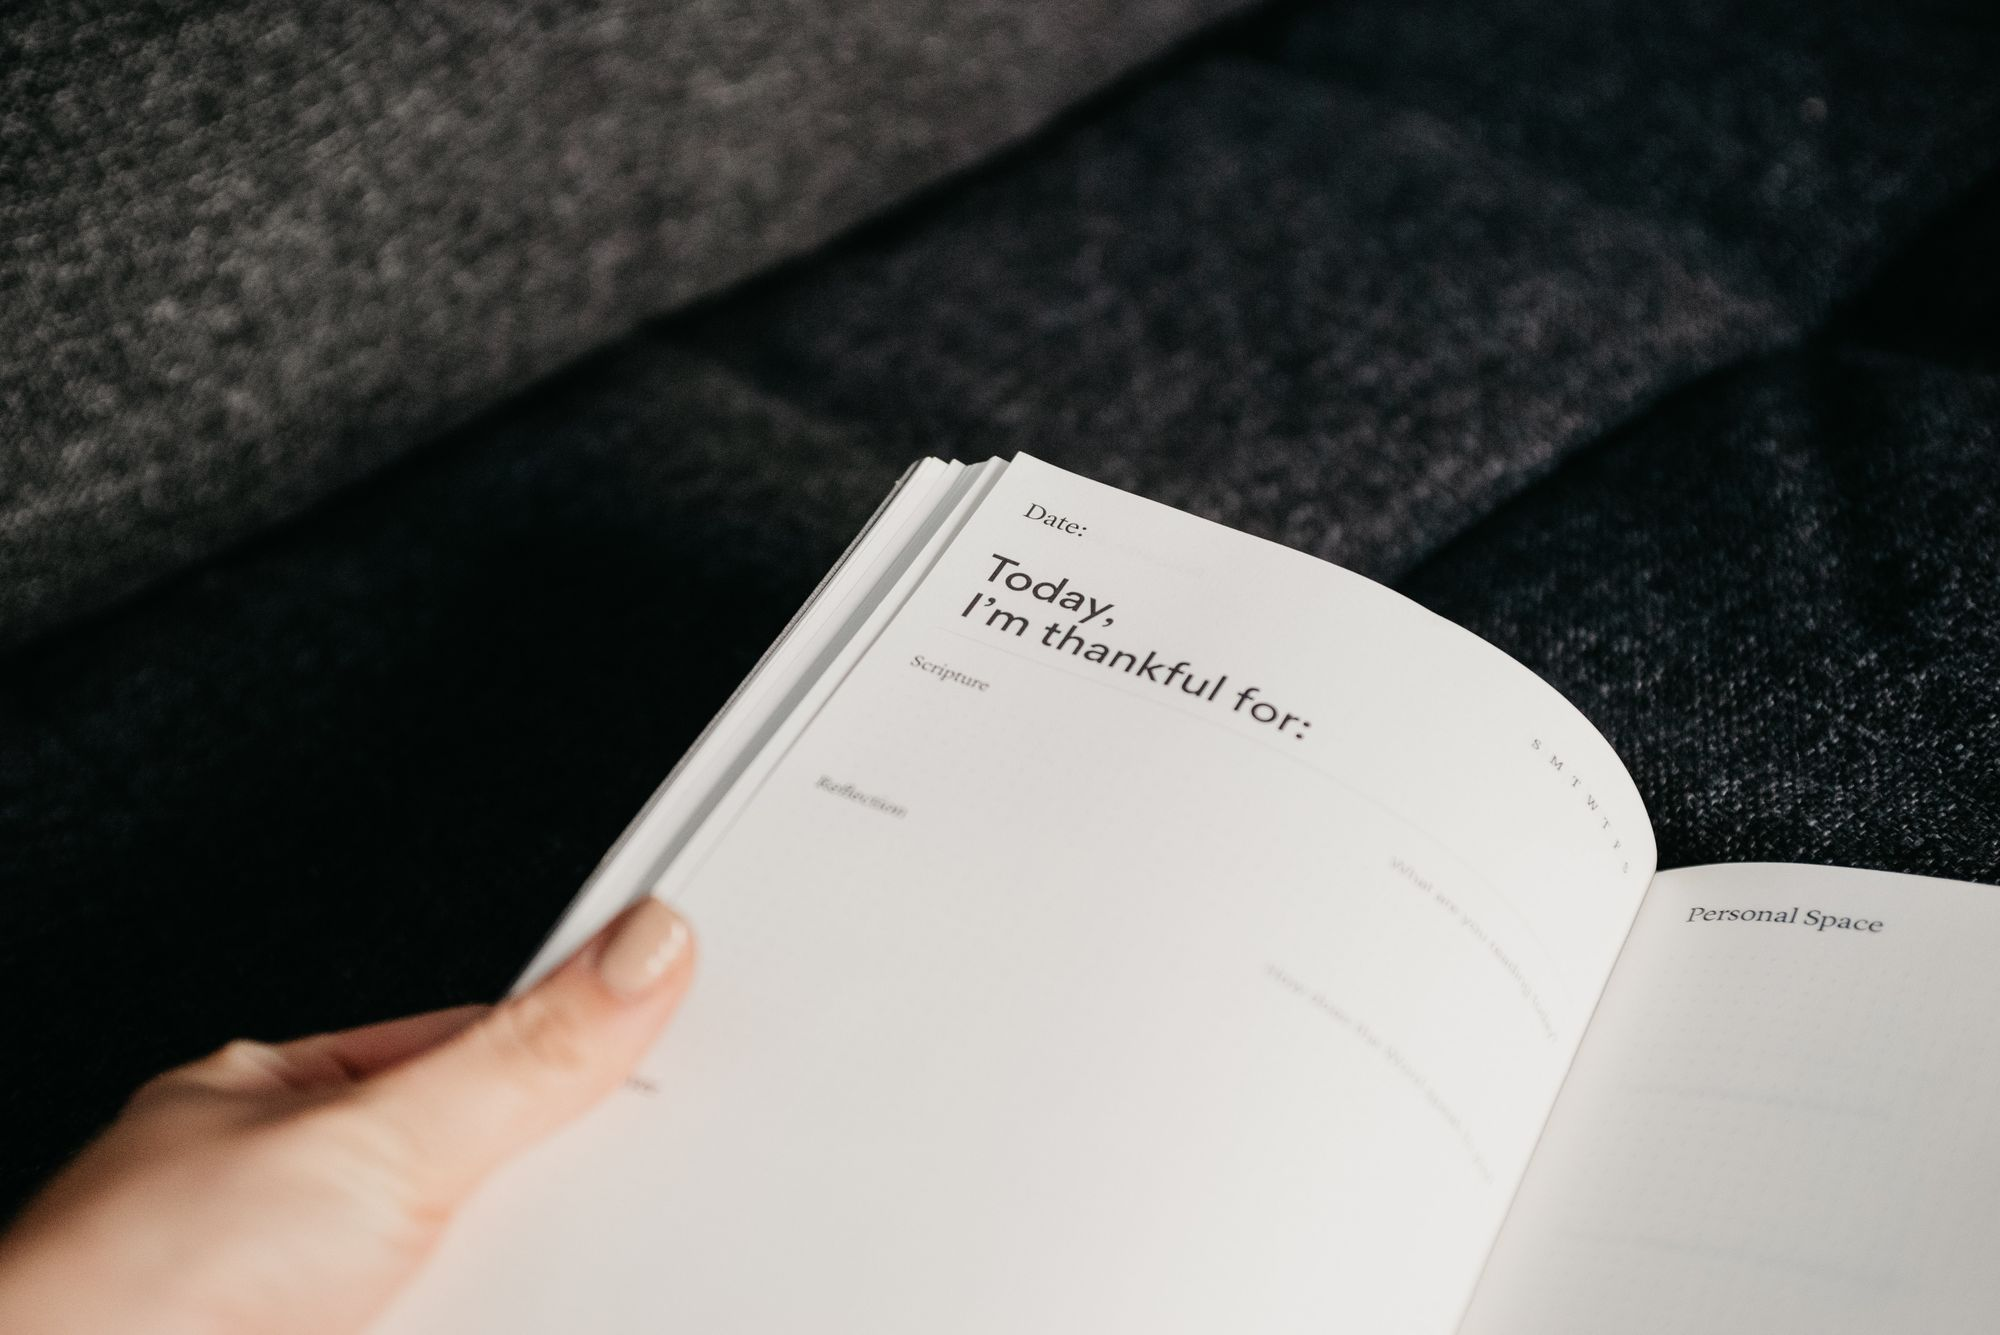 book on a table with a hand